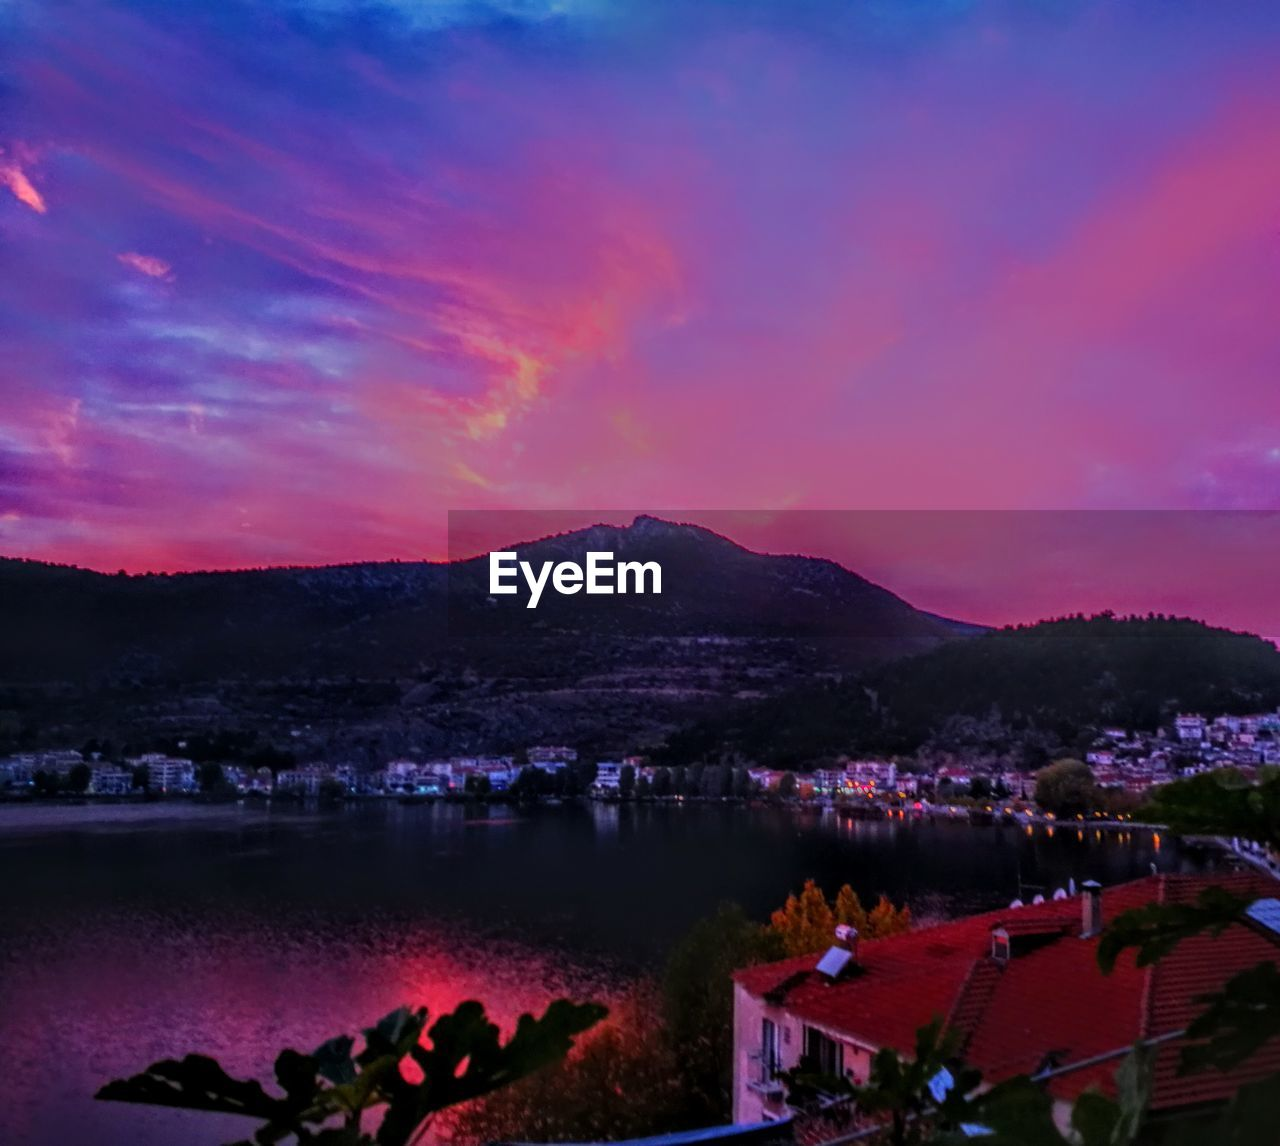 sunset, mountain, sky, building exterior, dusk, beauty in nature, scenics, lake, outdoors, nature, town, architecture, night, built structure, large group of people, water, illuminated, mountain range, tree, city, cityscape, people